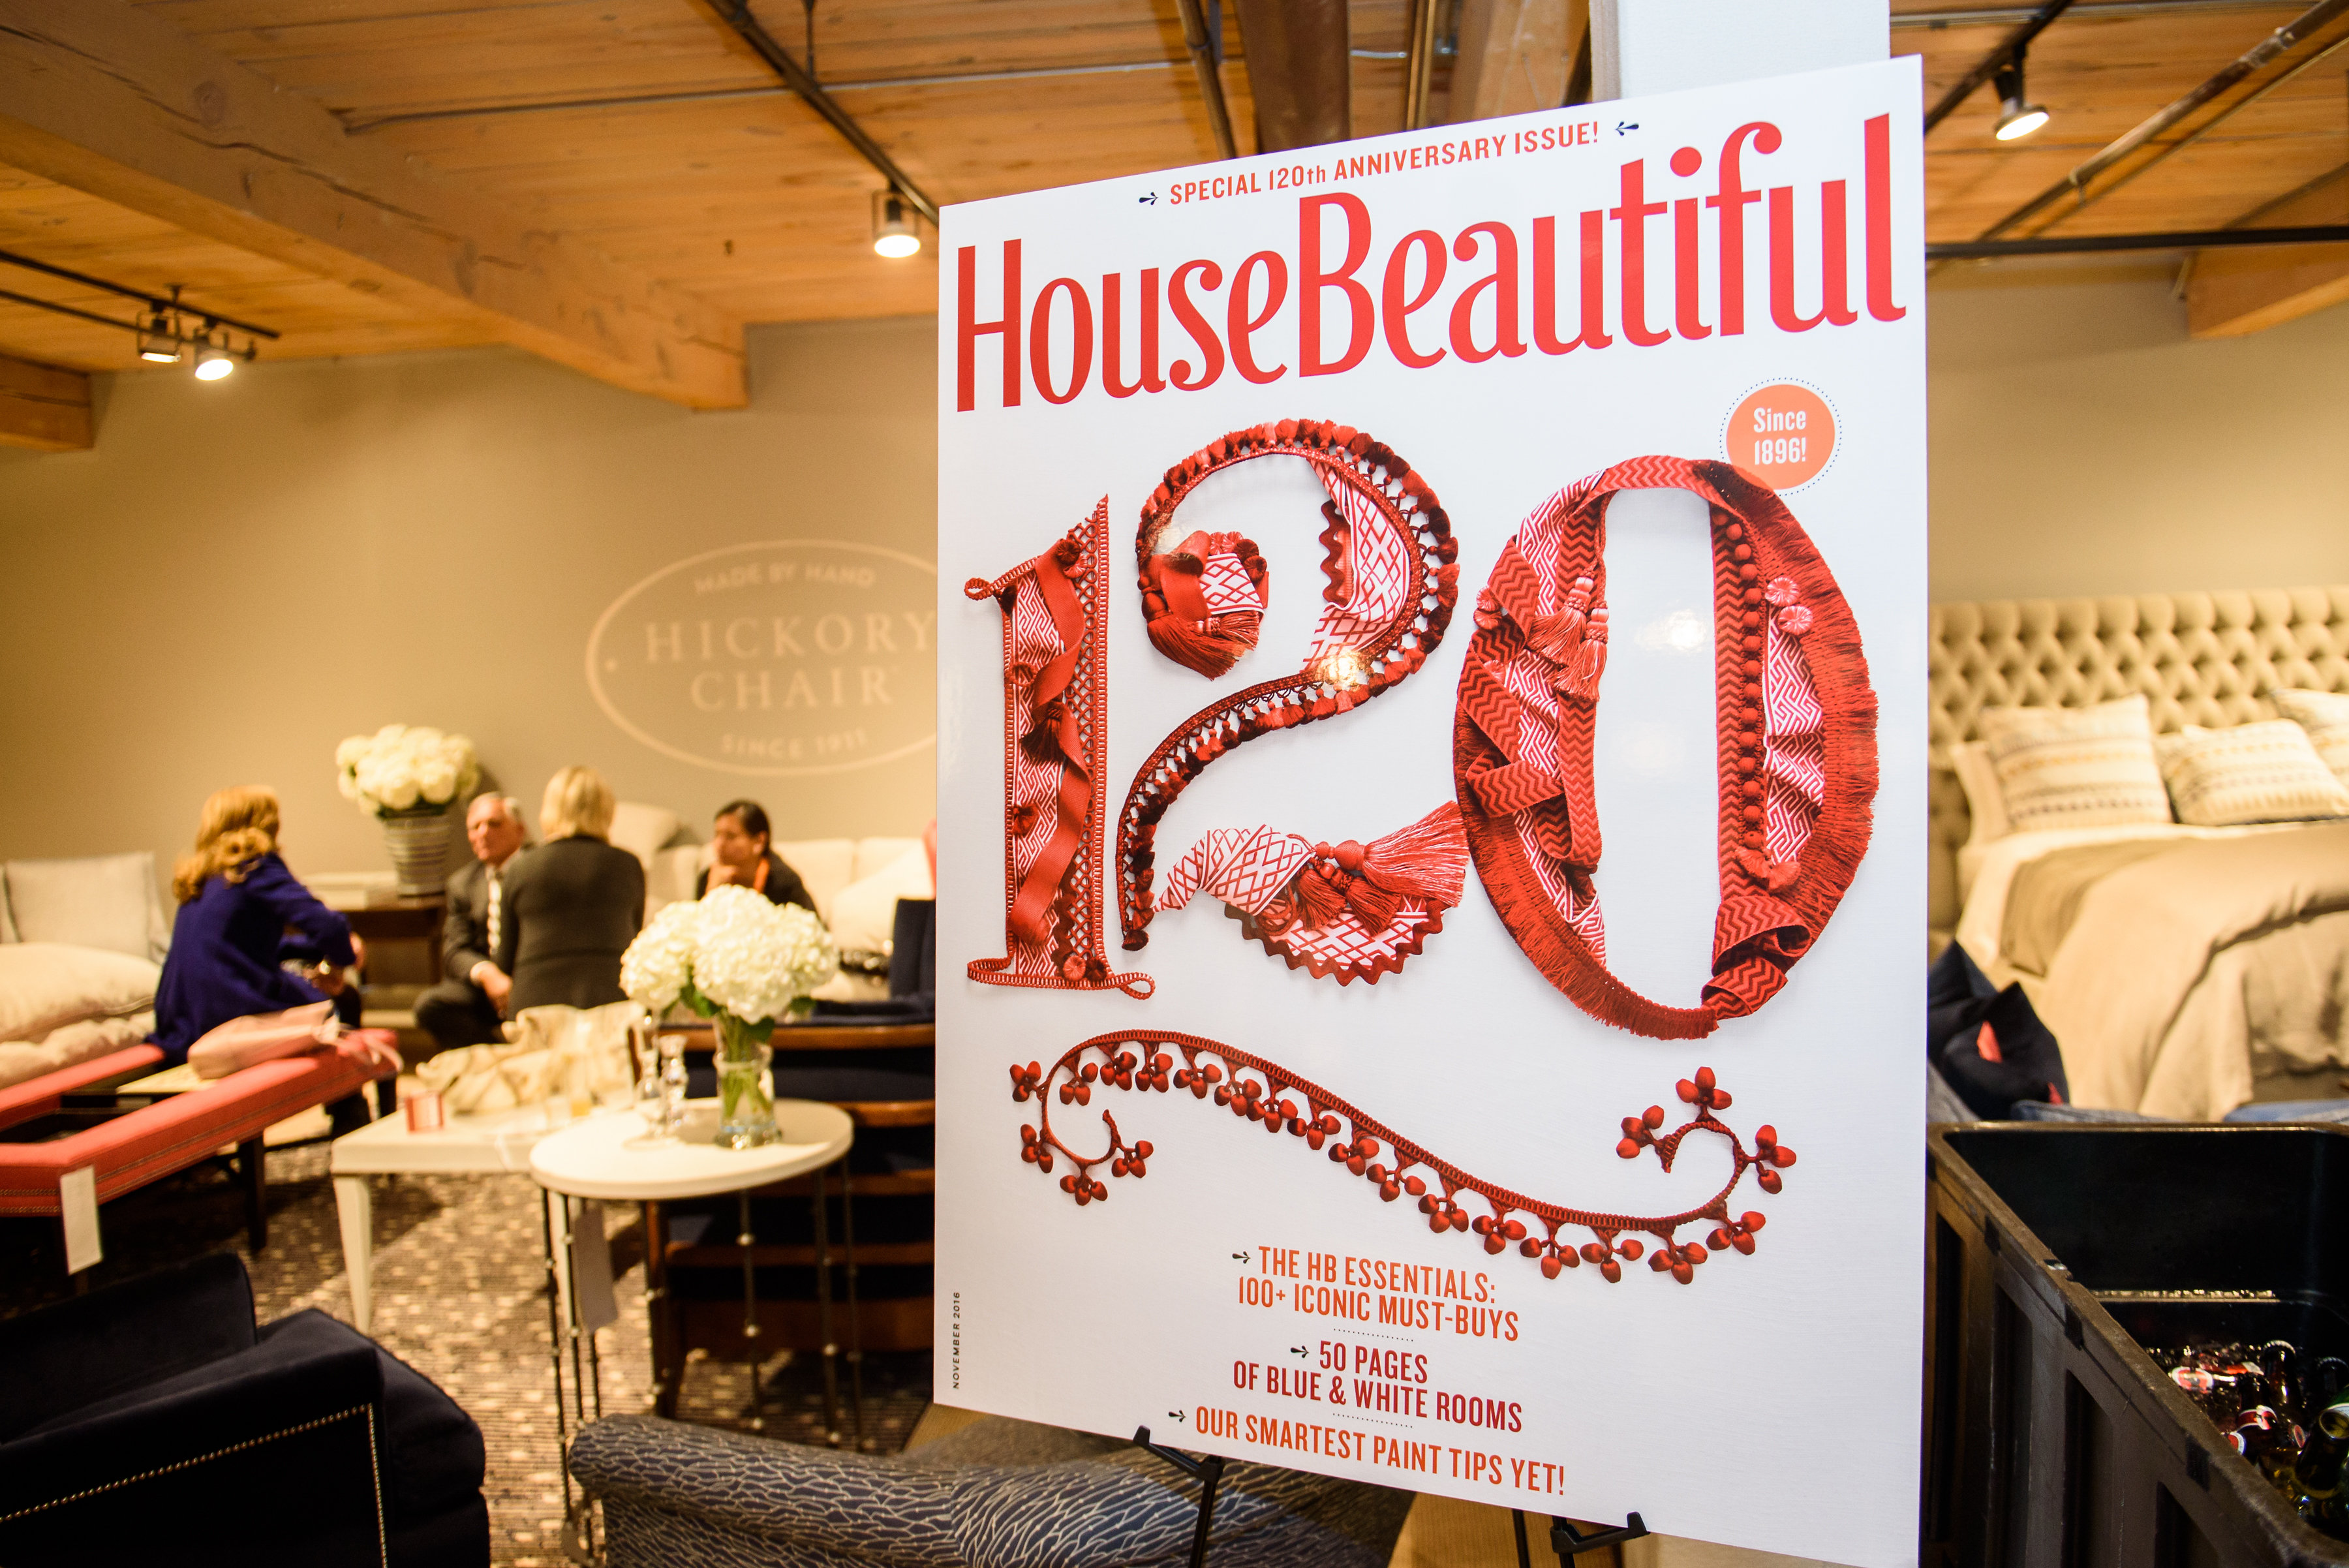 House Beautiful's 120th anniversary cover